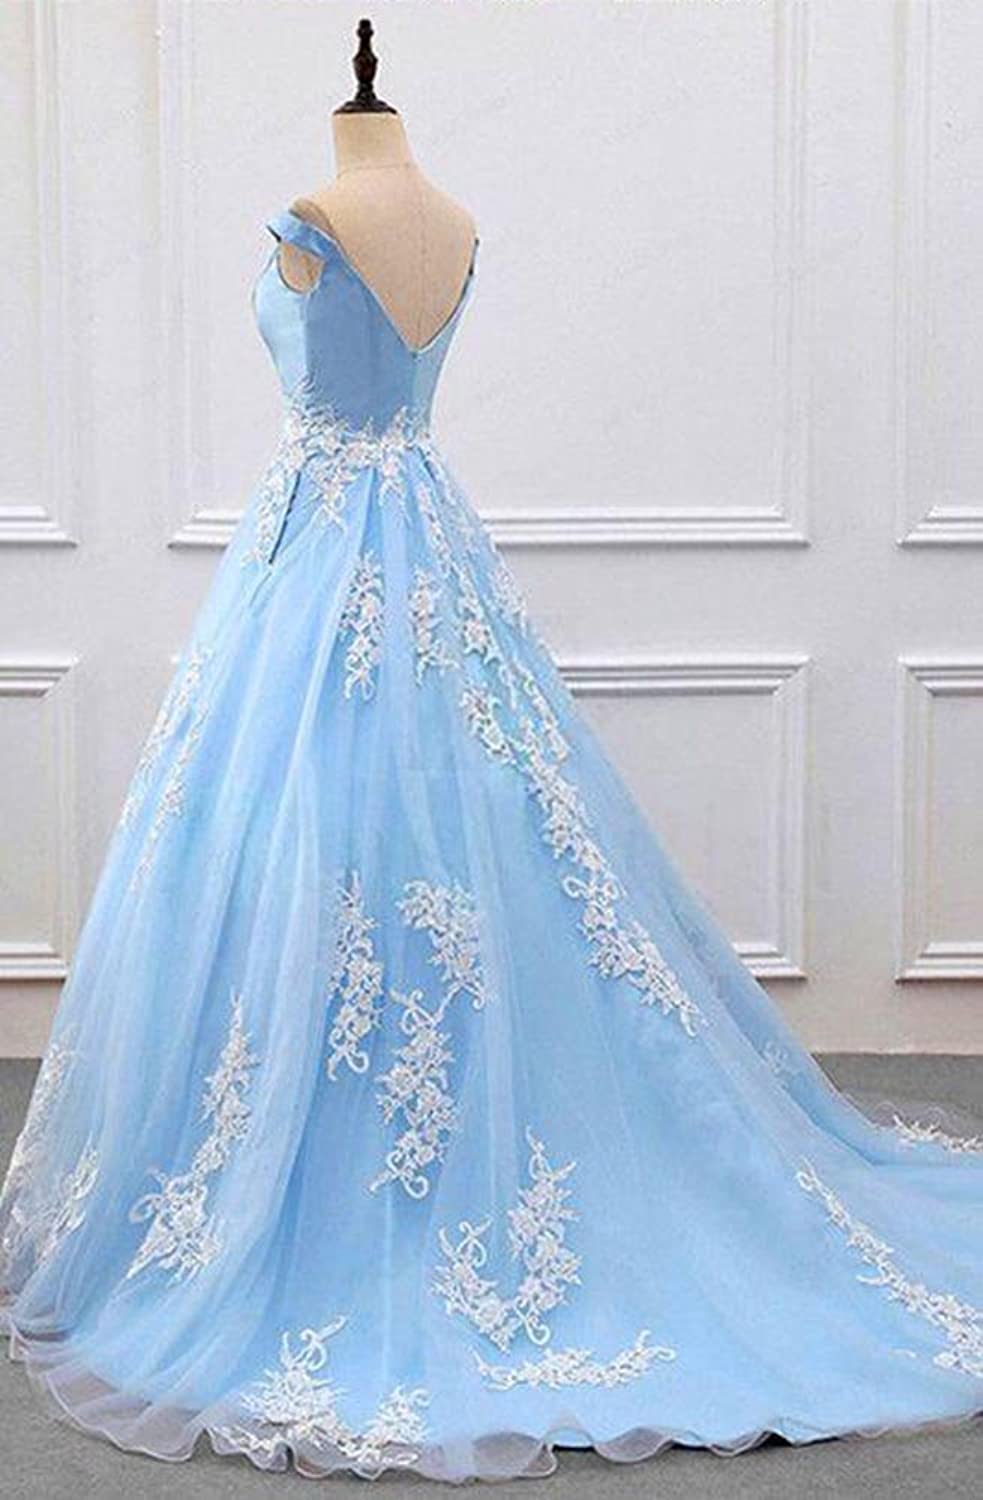 2018 Light Blue Ball Gowns Prom Dresses with Pockets Long Lace Off ...